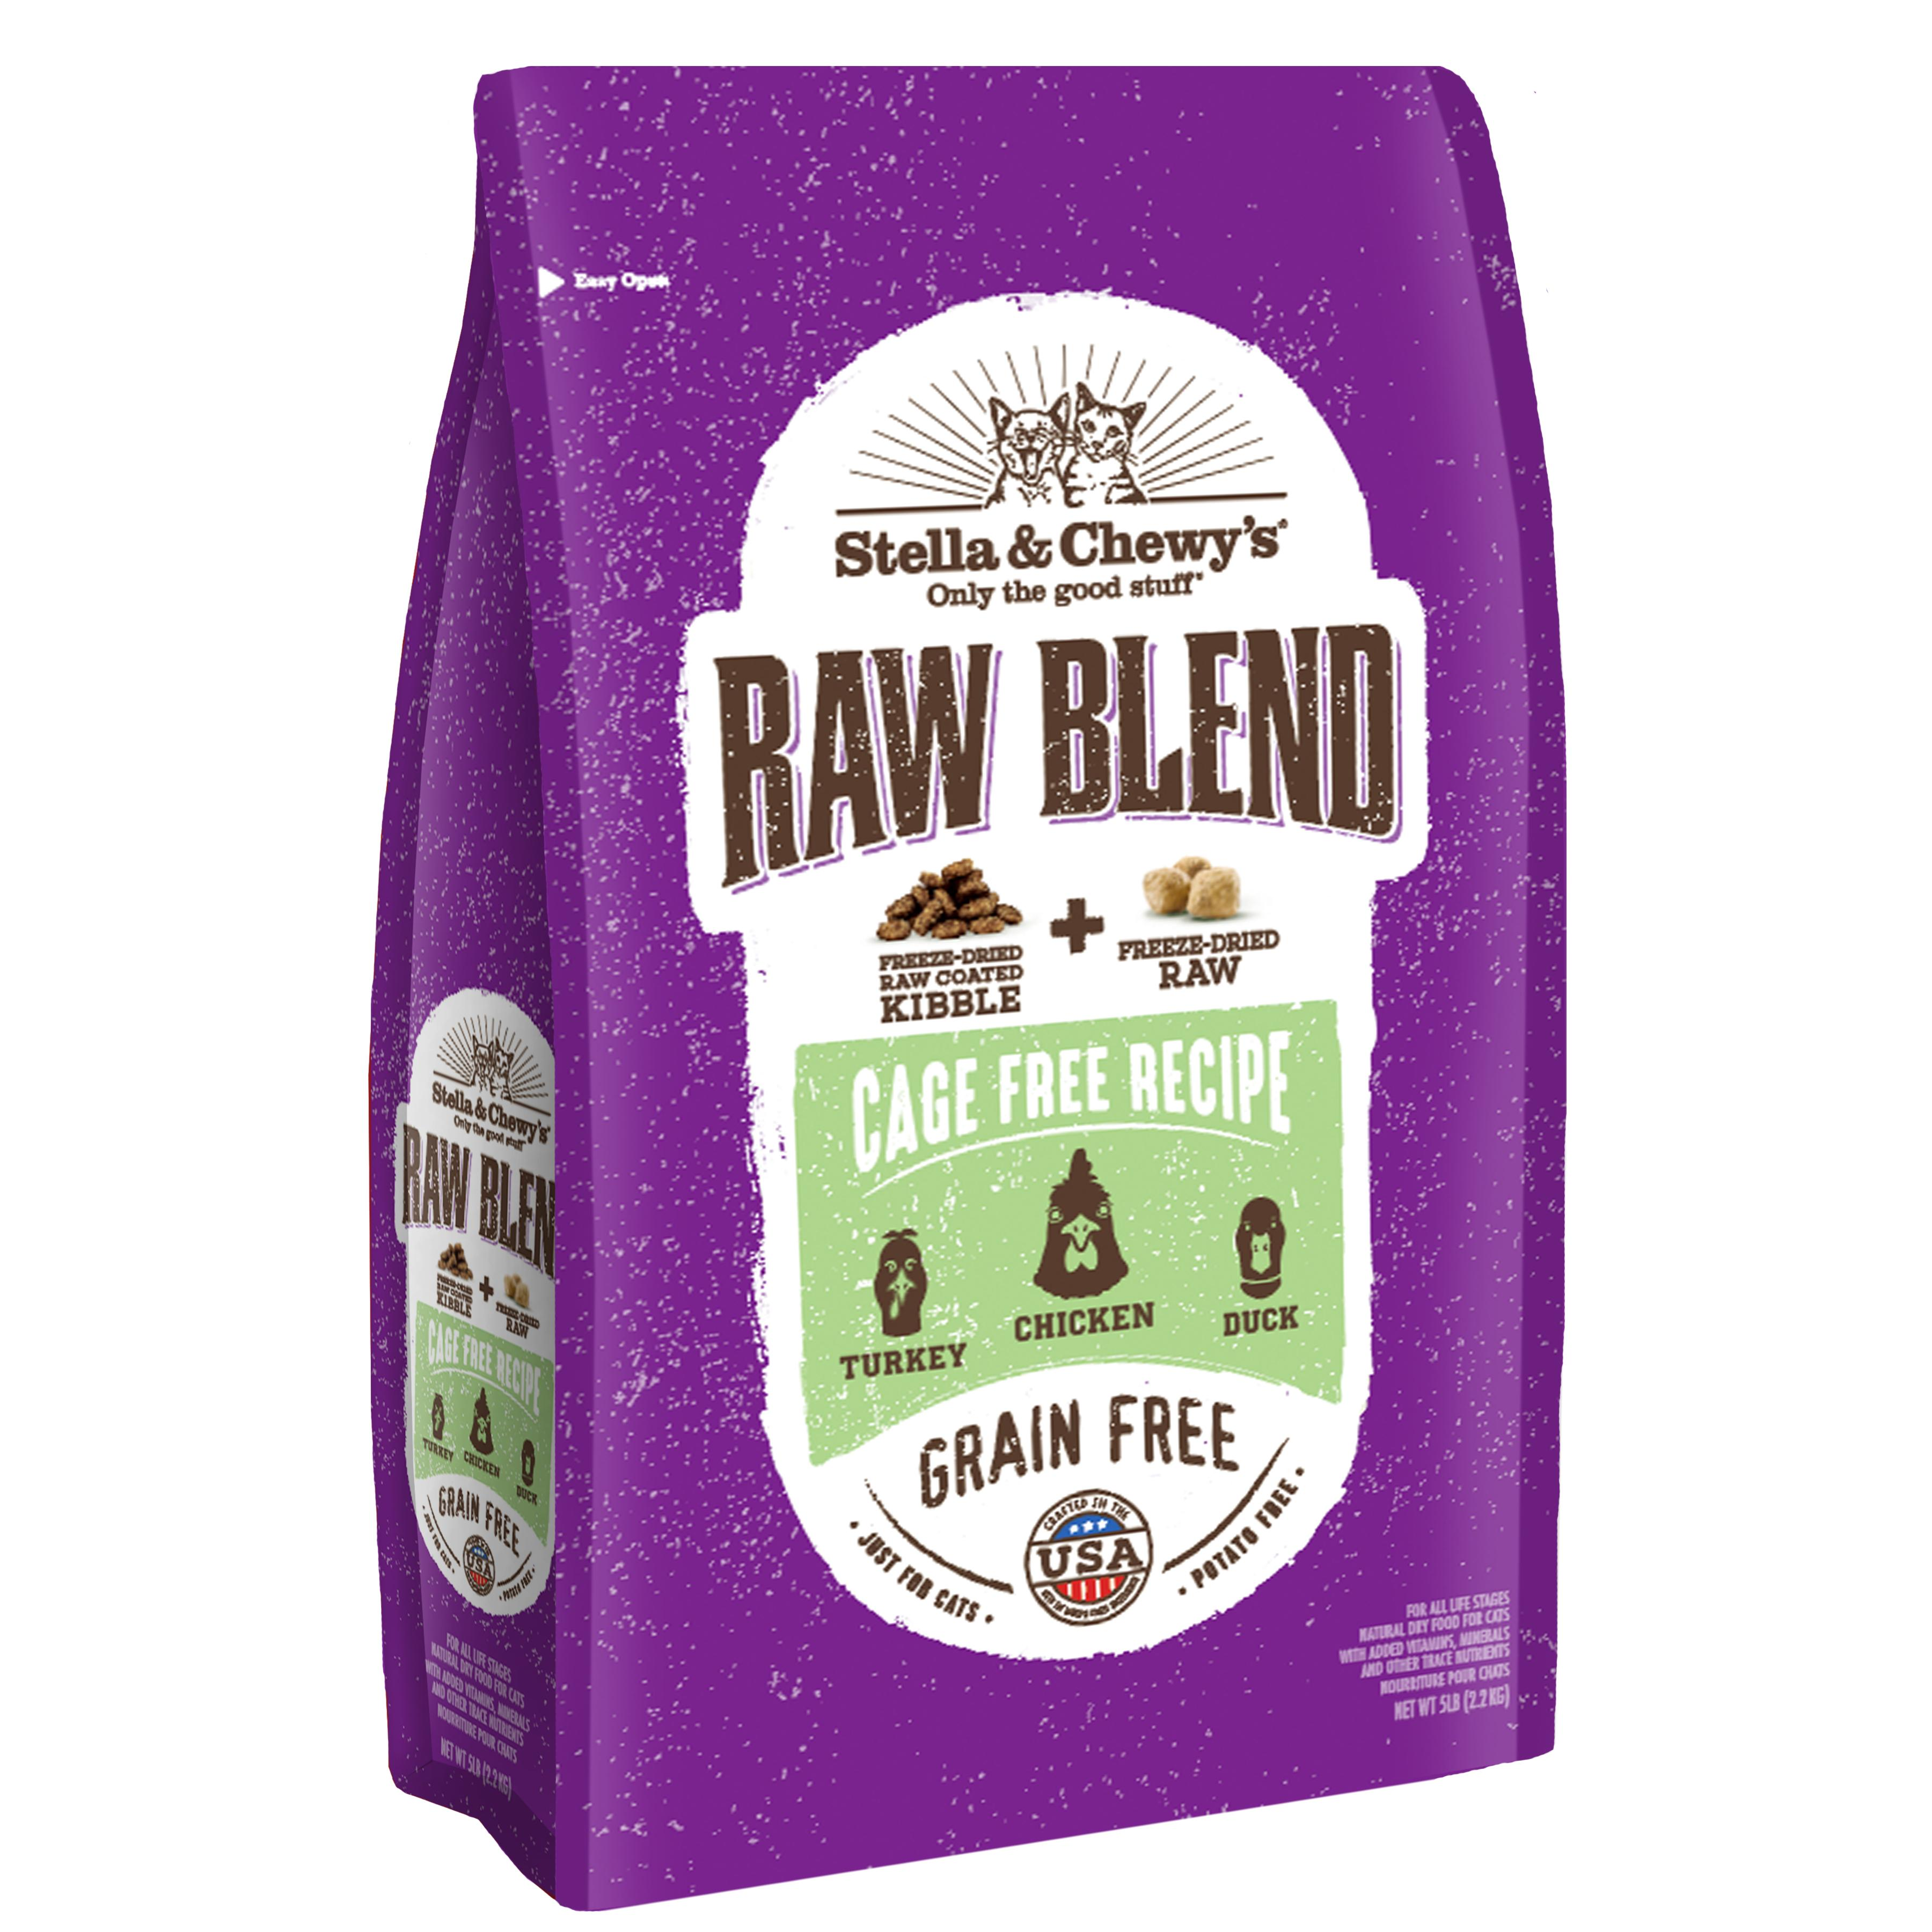 Stella & Chewy's Raw Blend Cage-Free Poultry Recipe Dry Cat Food, 5-lb